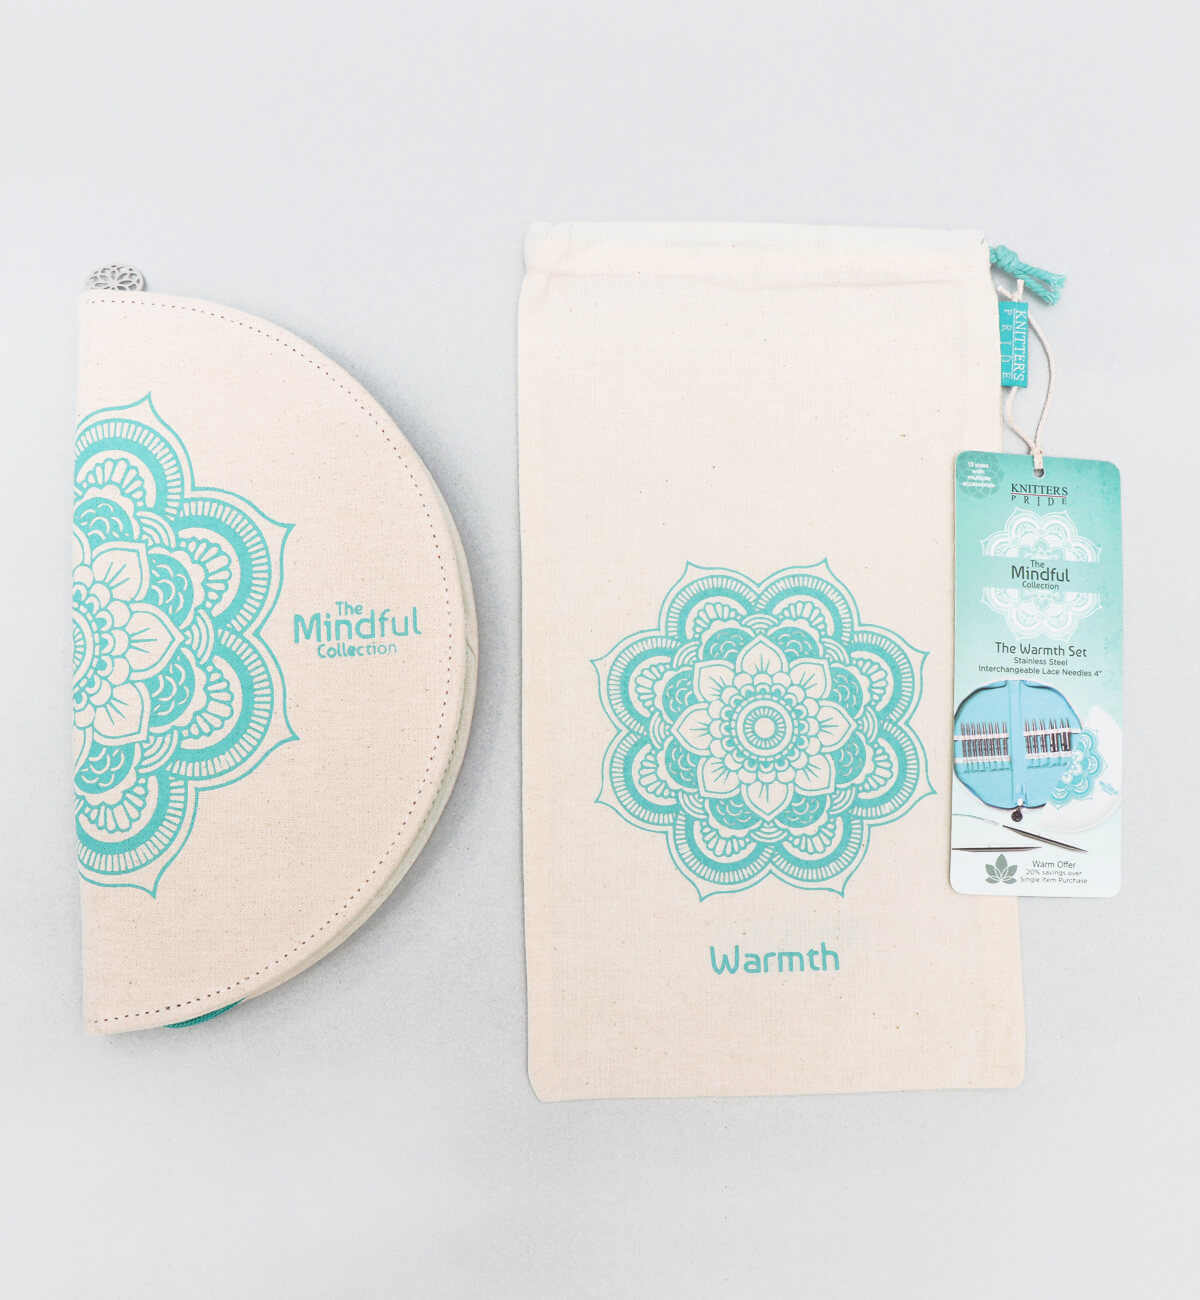 The Mindful Collection Needle Set, Warmth Set